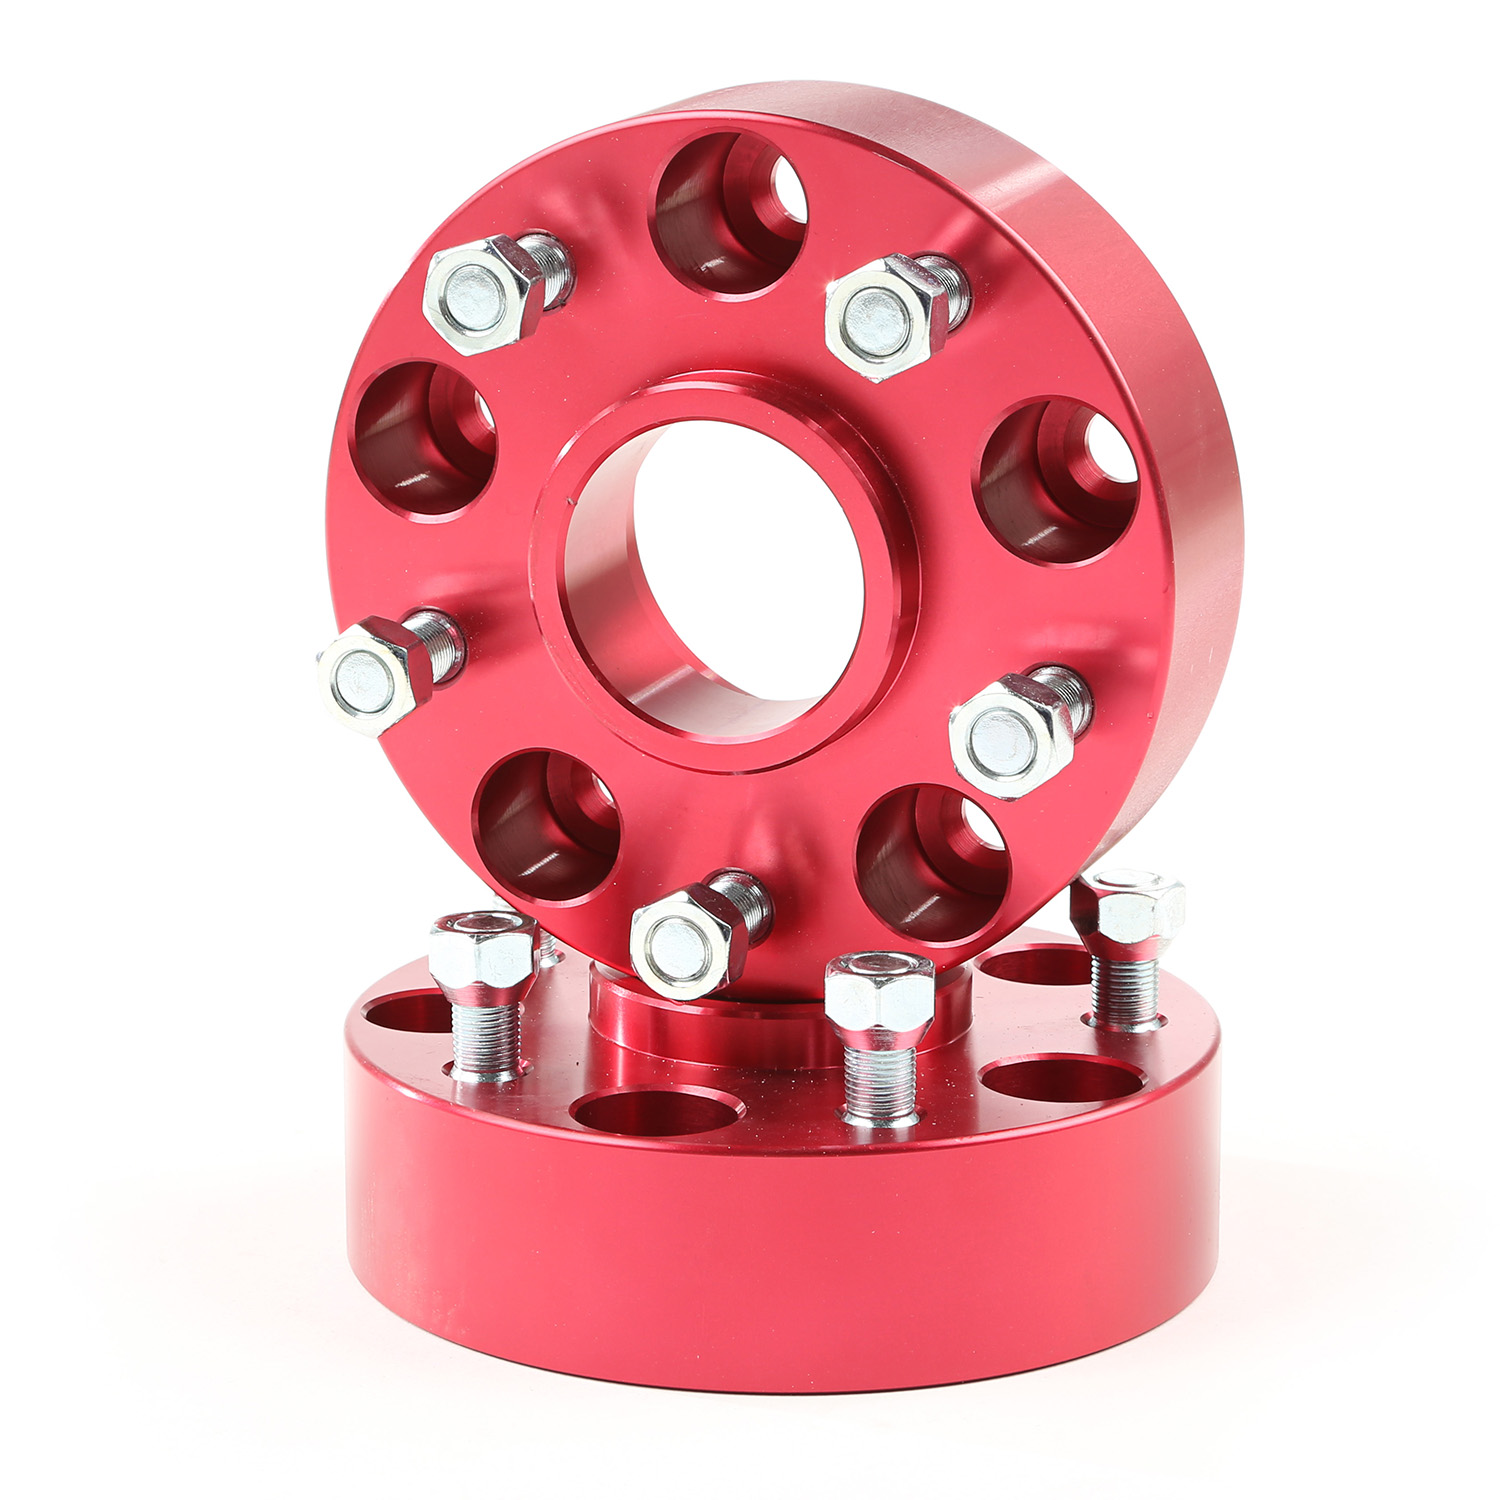 11304 Alloy Axle Wheel Spacer 5 x 127 Millimeter/ 5 x 5.00 Inch Bolt